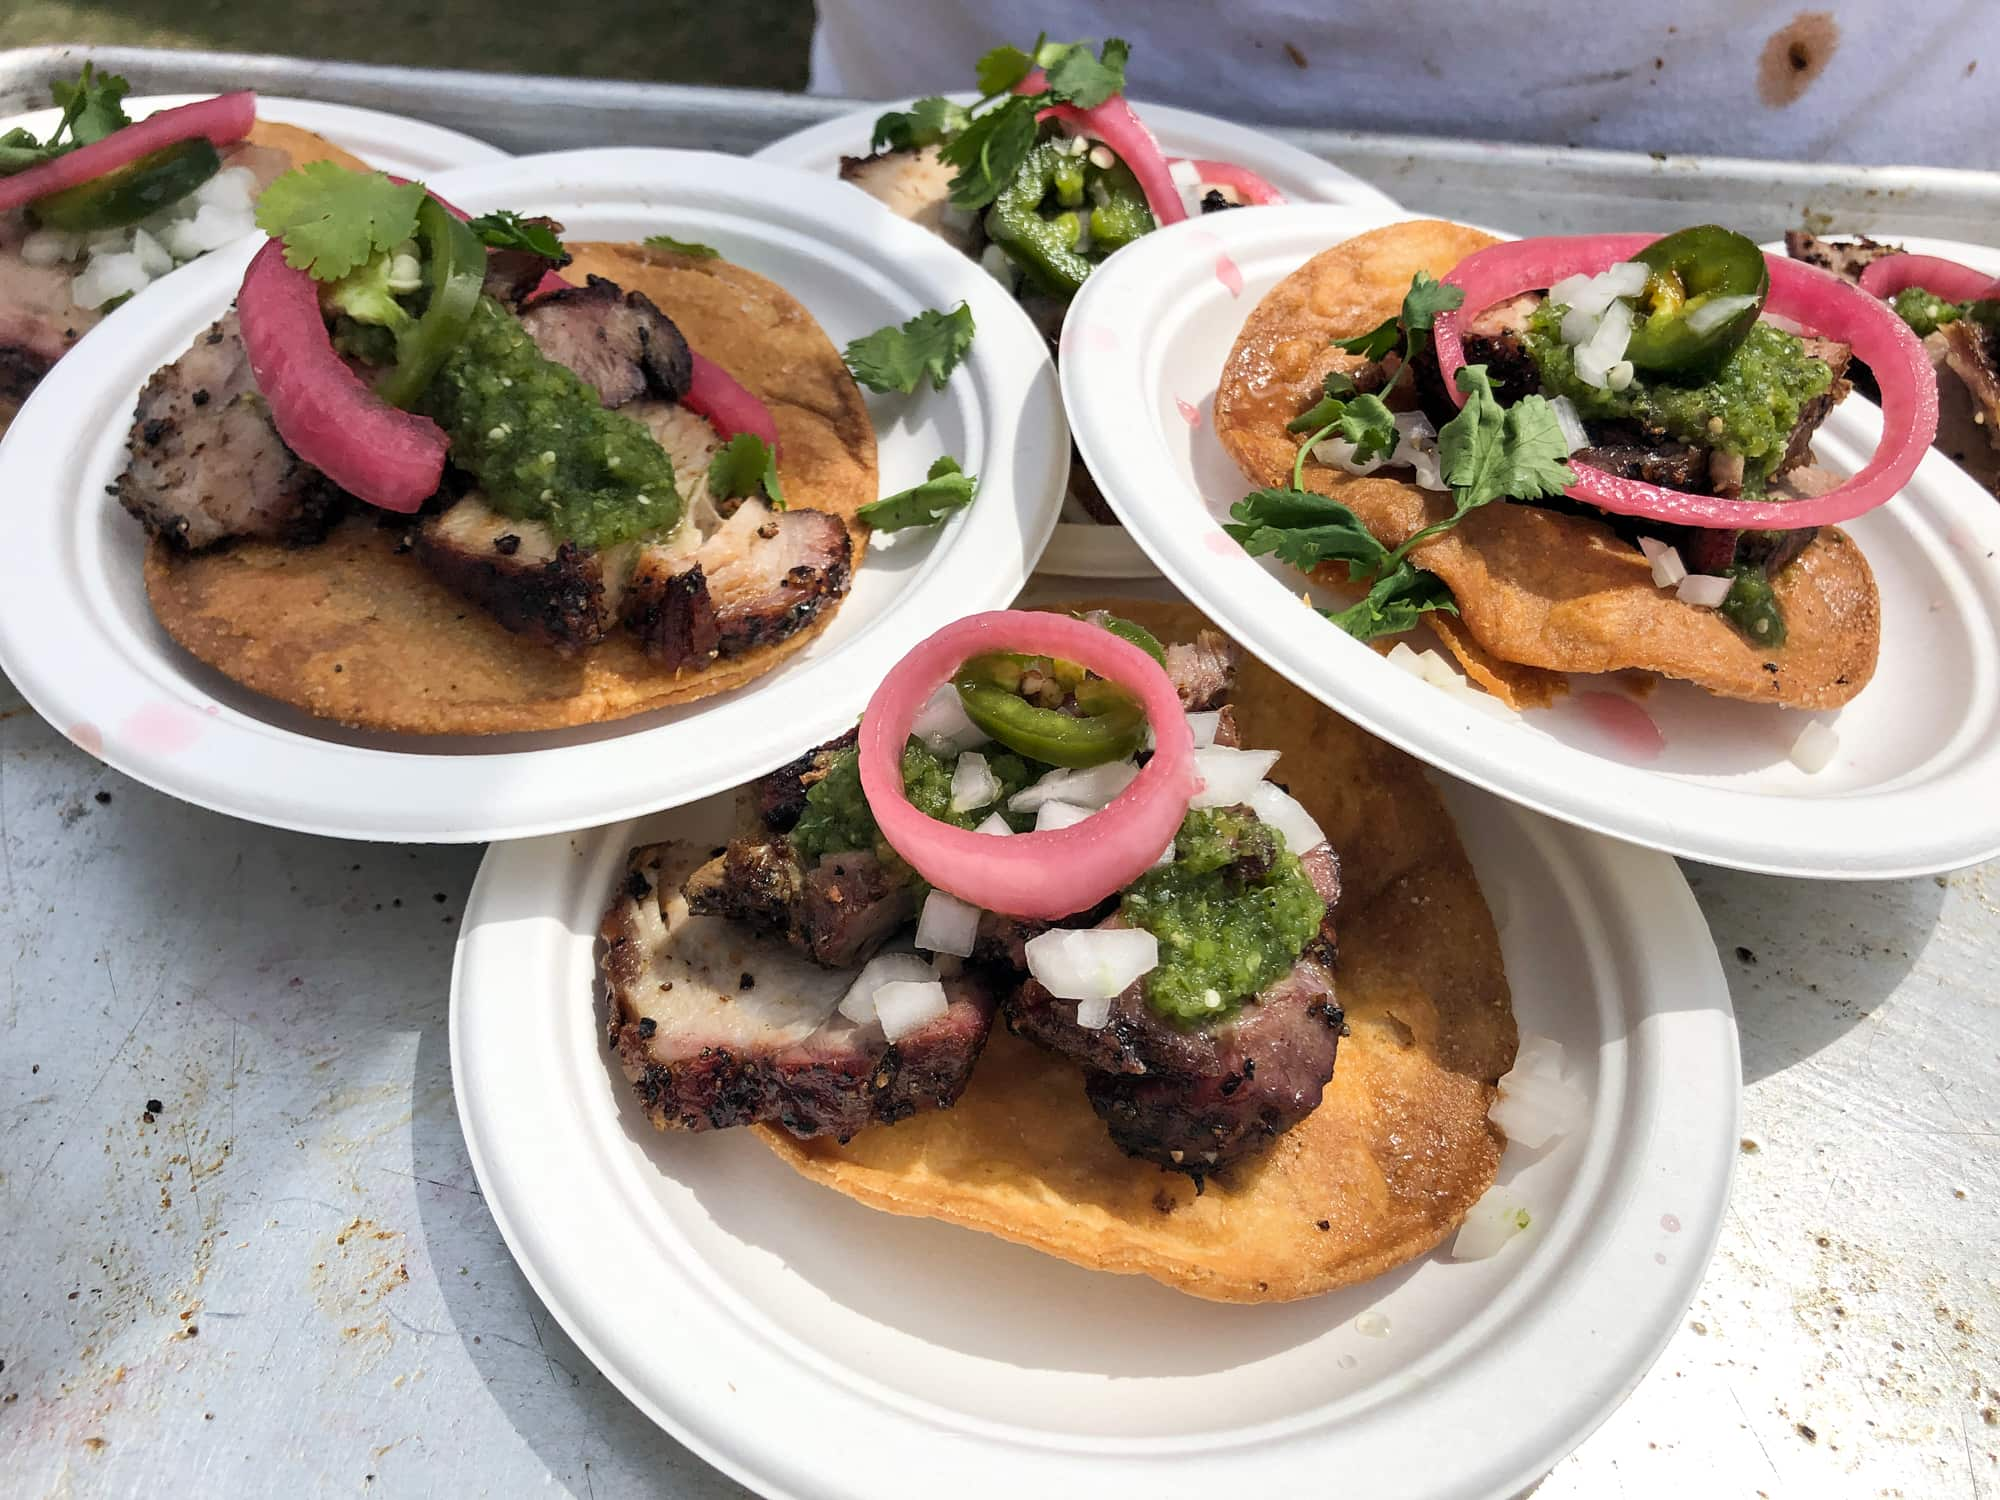 Beef tostadas with onion and chimichurri sauce